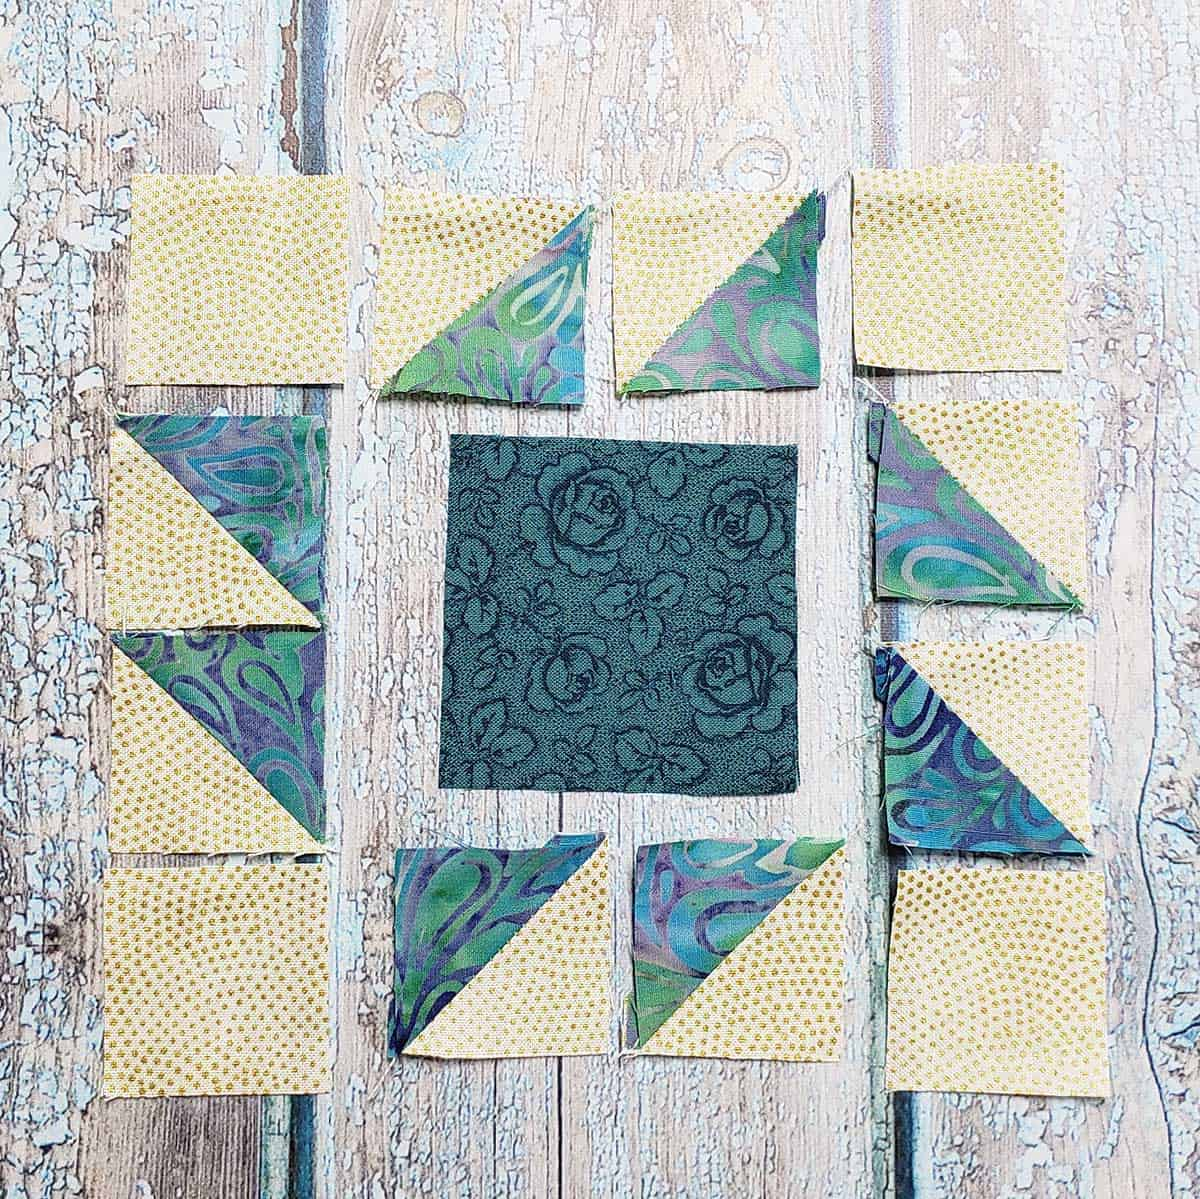 Piecing the Square and Points quilt block